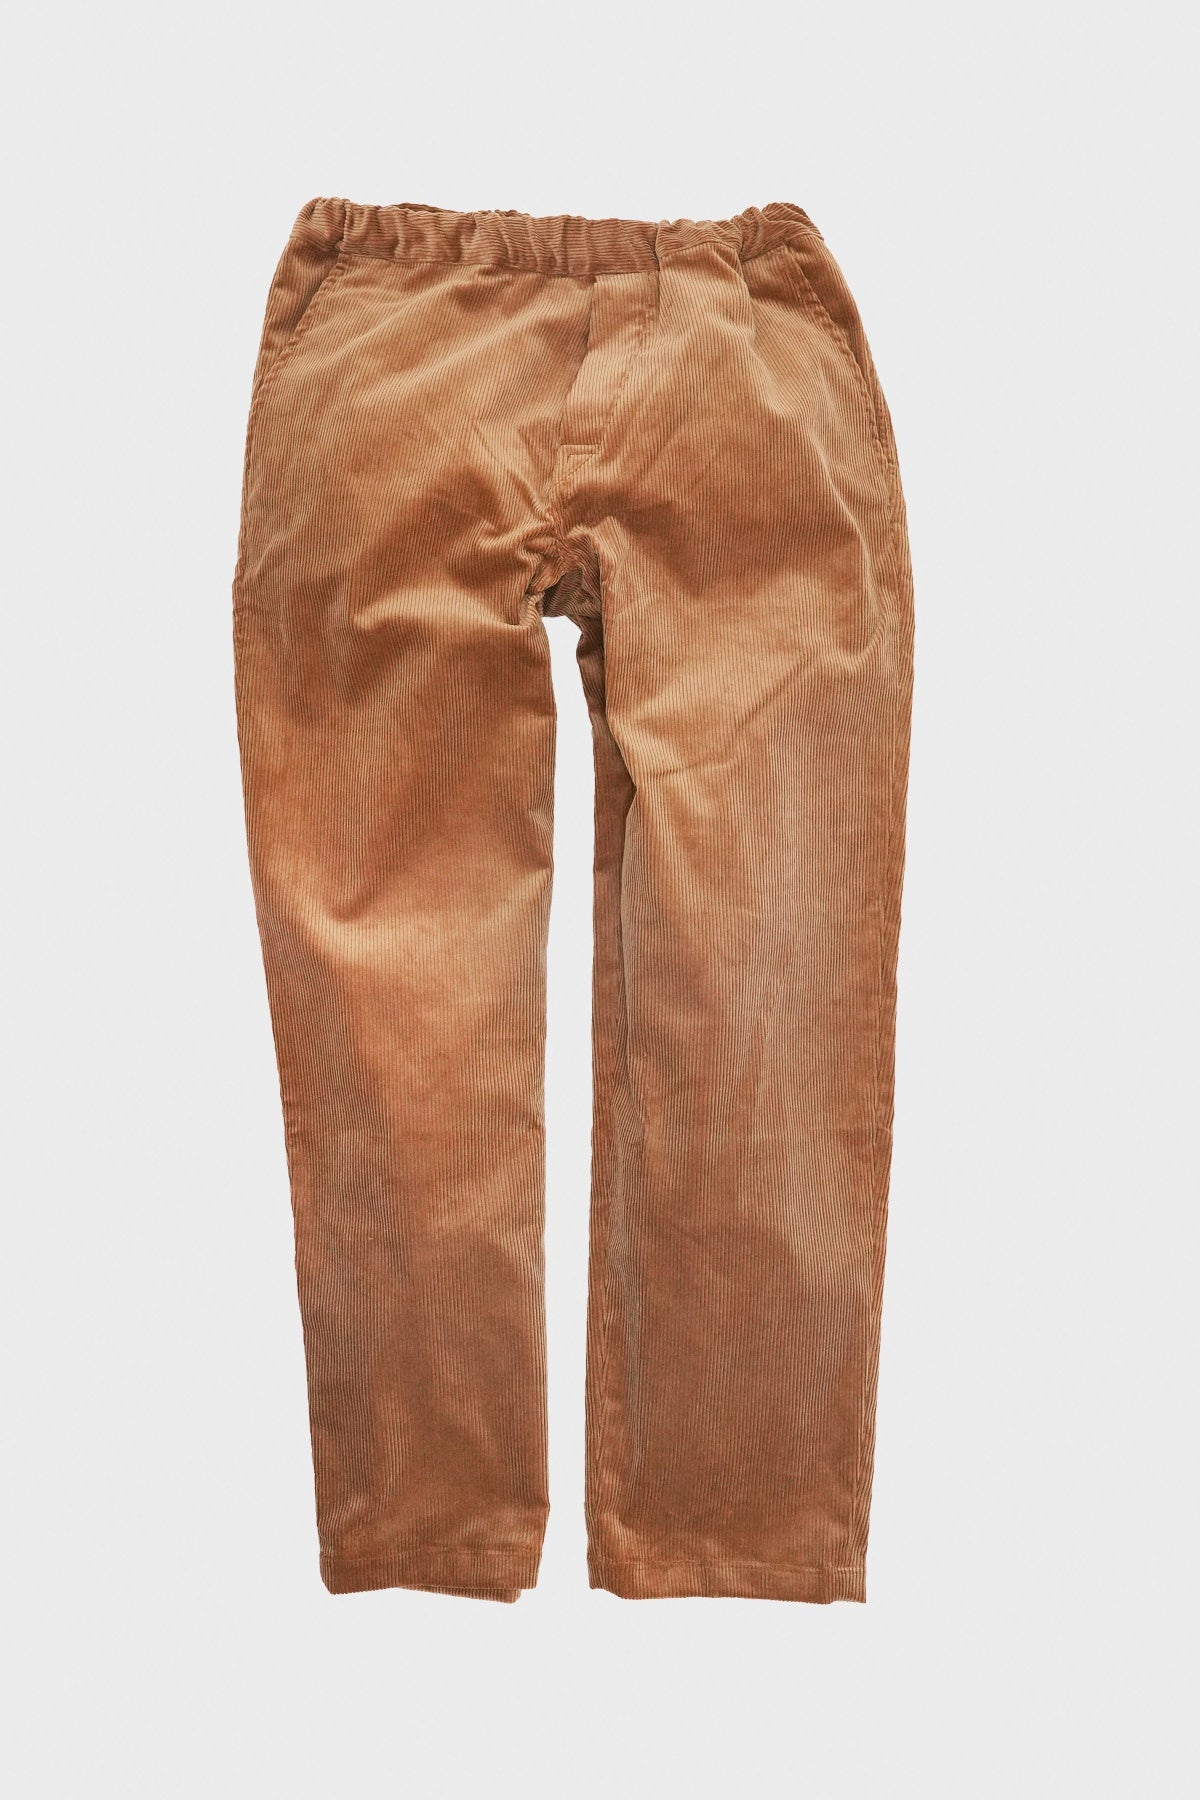 howlin Magic Work Pants - Beige